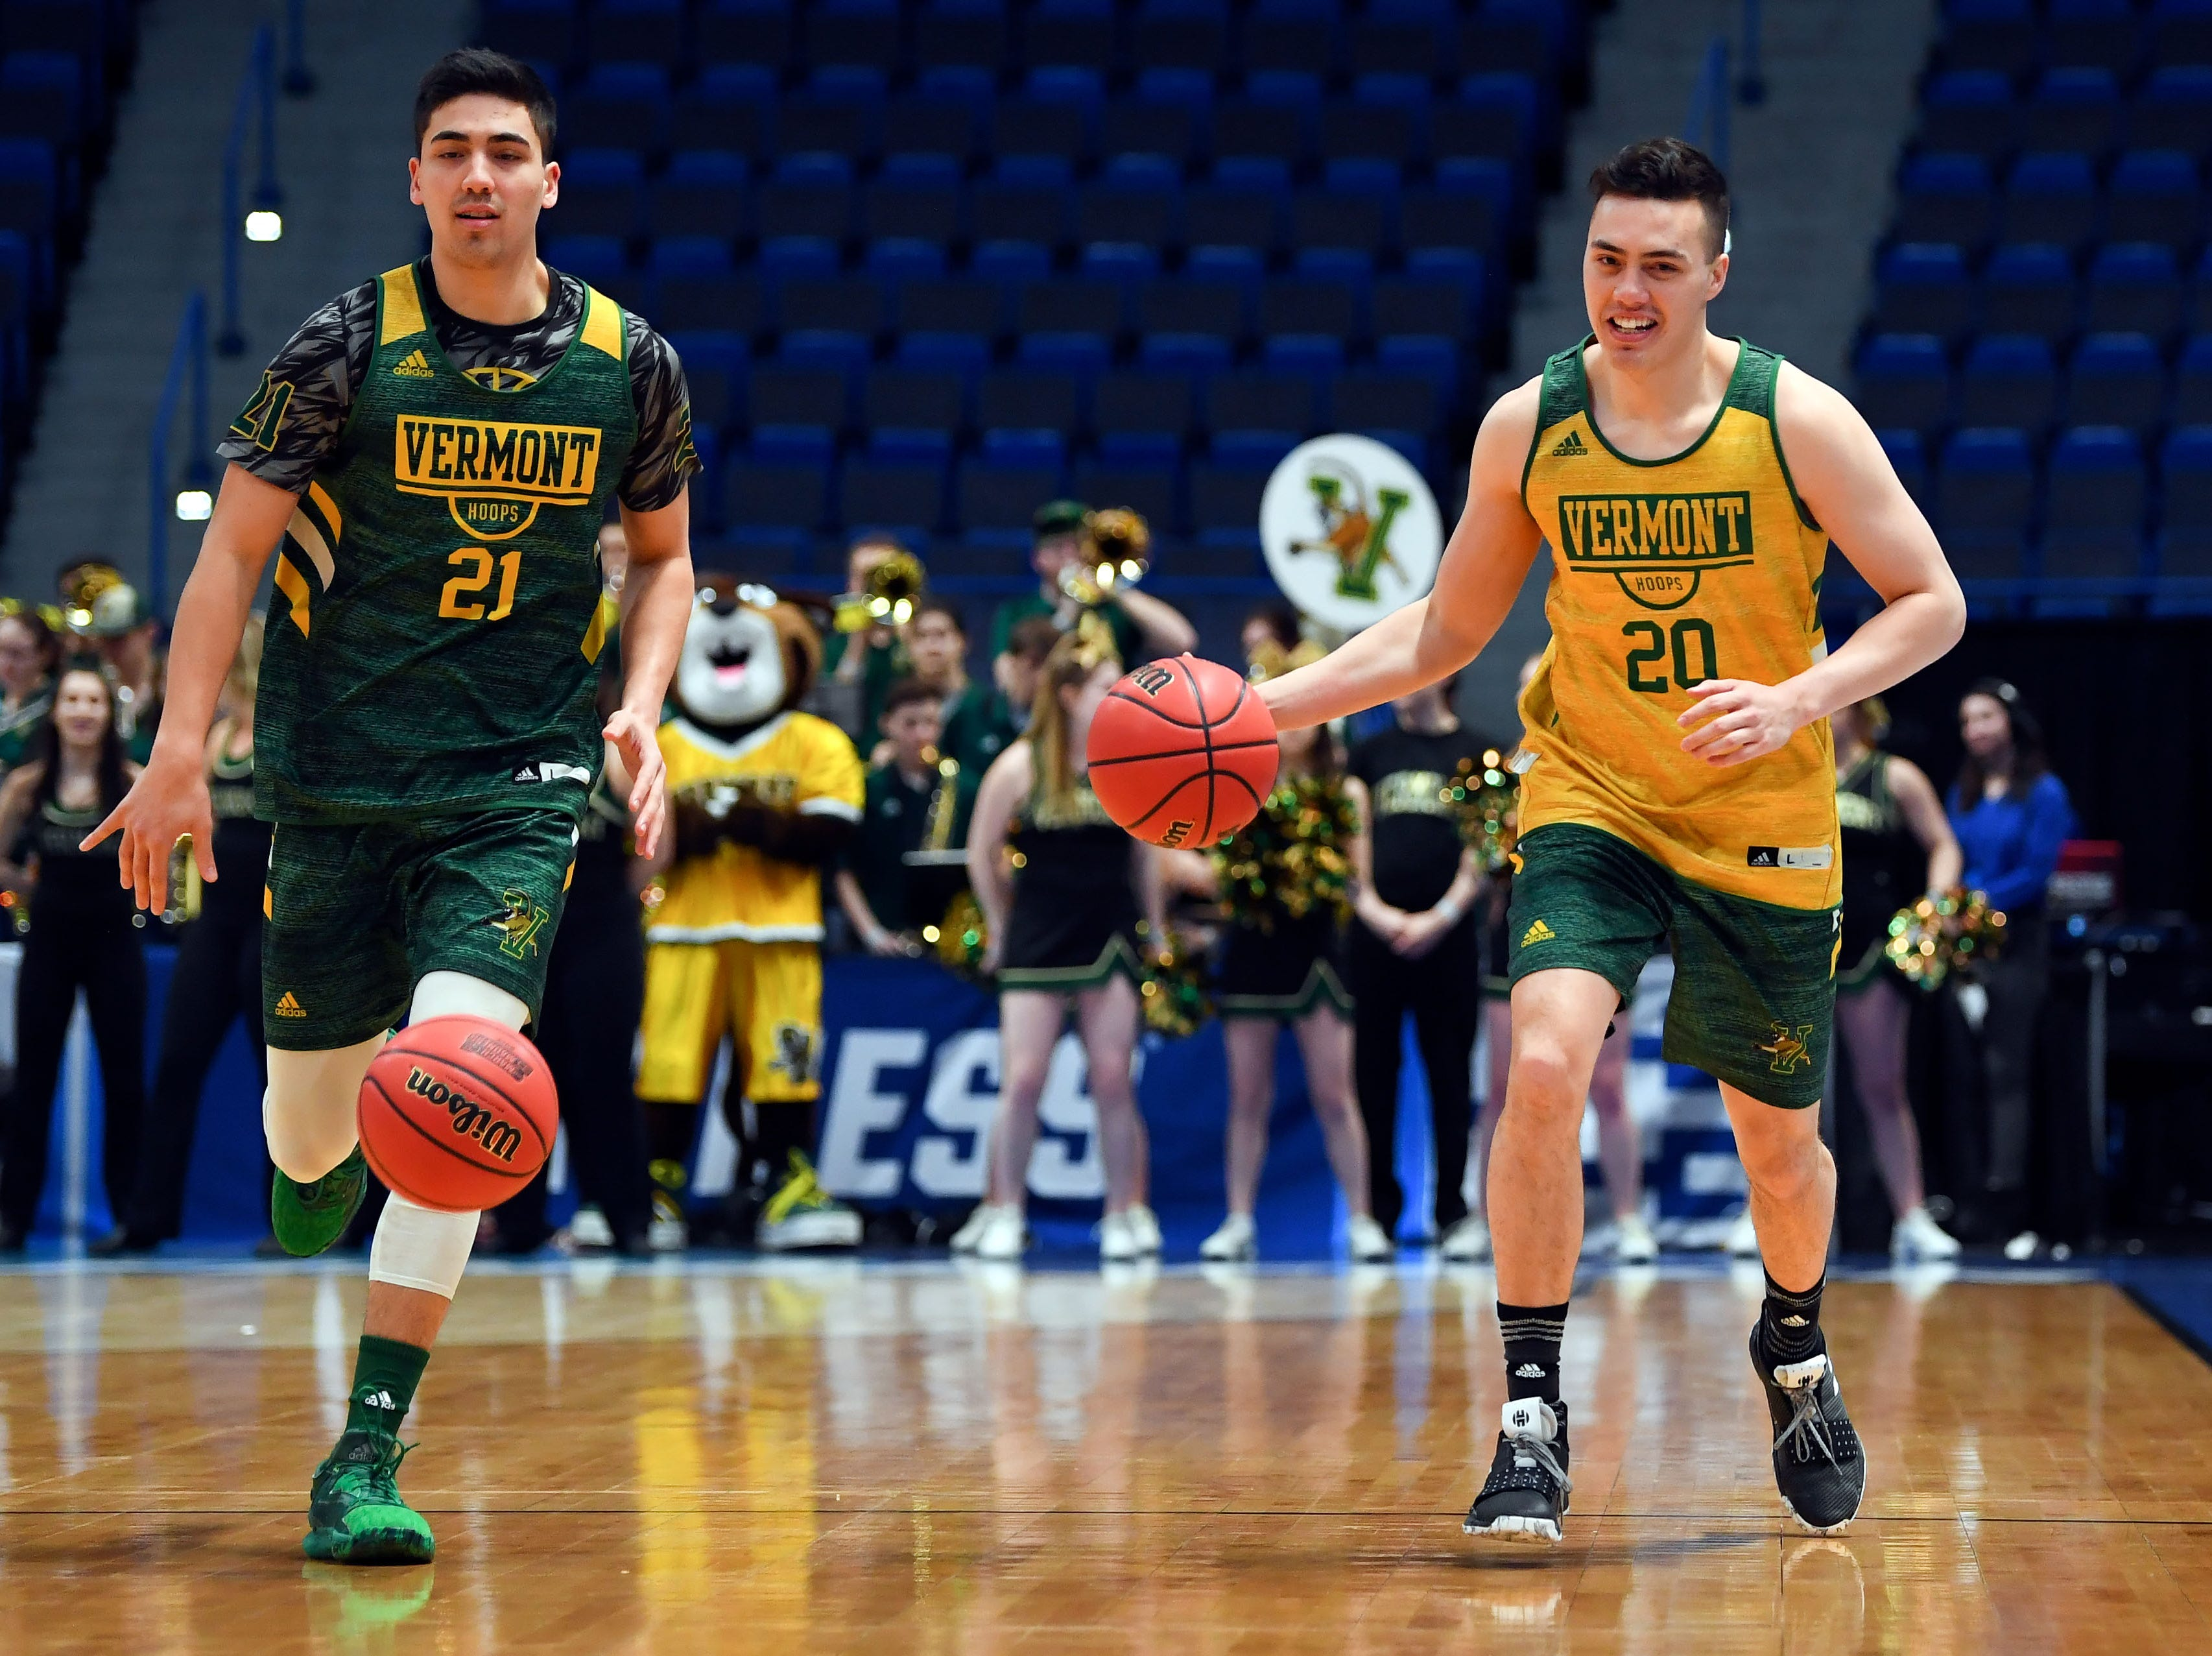 Mar 20, 2019; Hartford, CT, USA; Vermont Catamounts guard Ernie Duncan (20) and guard Everett Duncan (21) dribble the ball during practice before the first round of the 2019 NCAA Tournament at XL Center. Mandatory Credit: Robert Deutsch-USA TODAY Sports